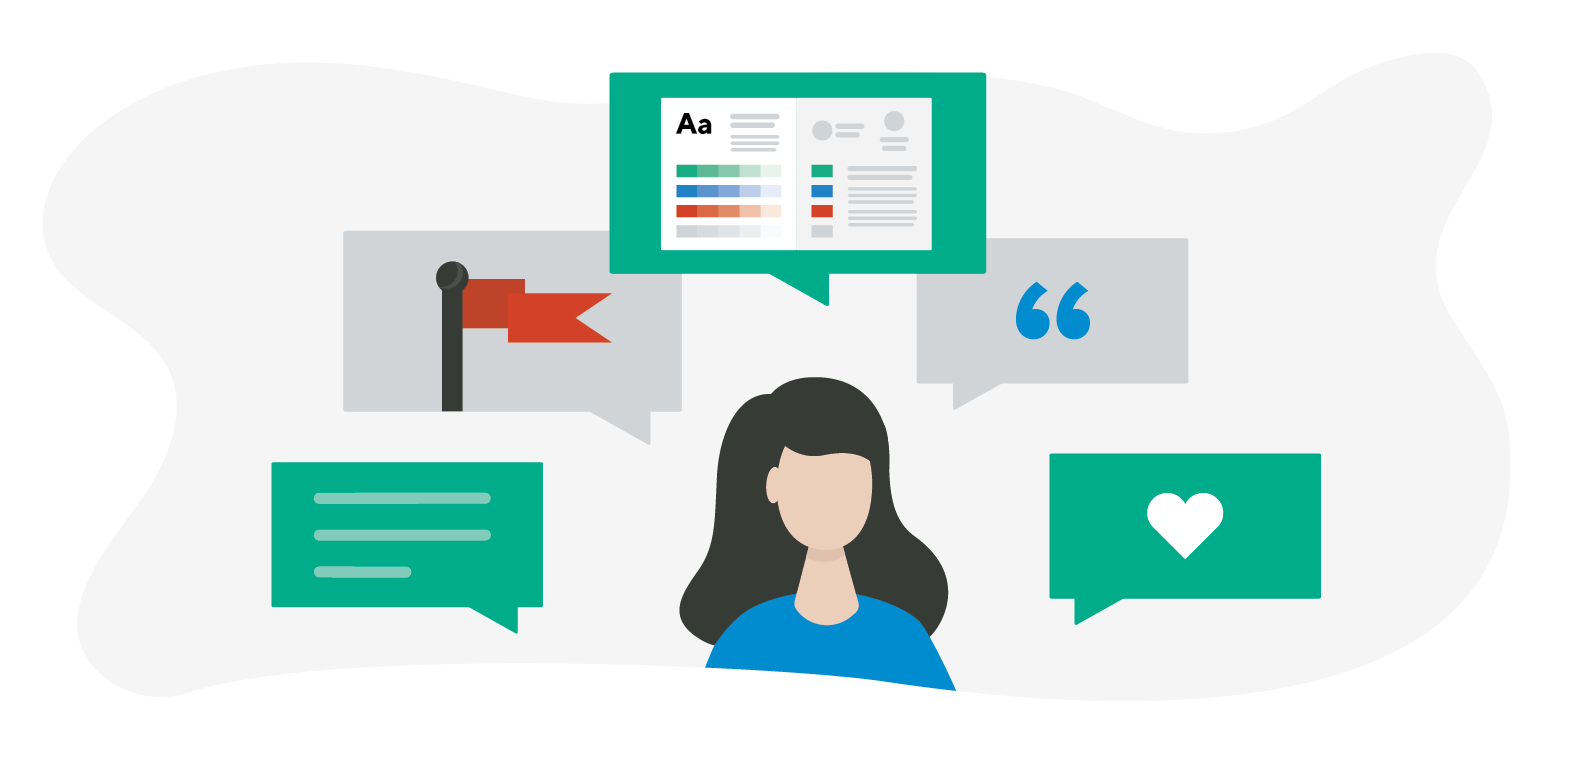 Image of woman with images of web design principles for brand storytelling